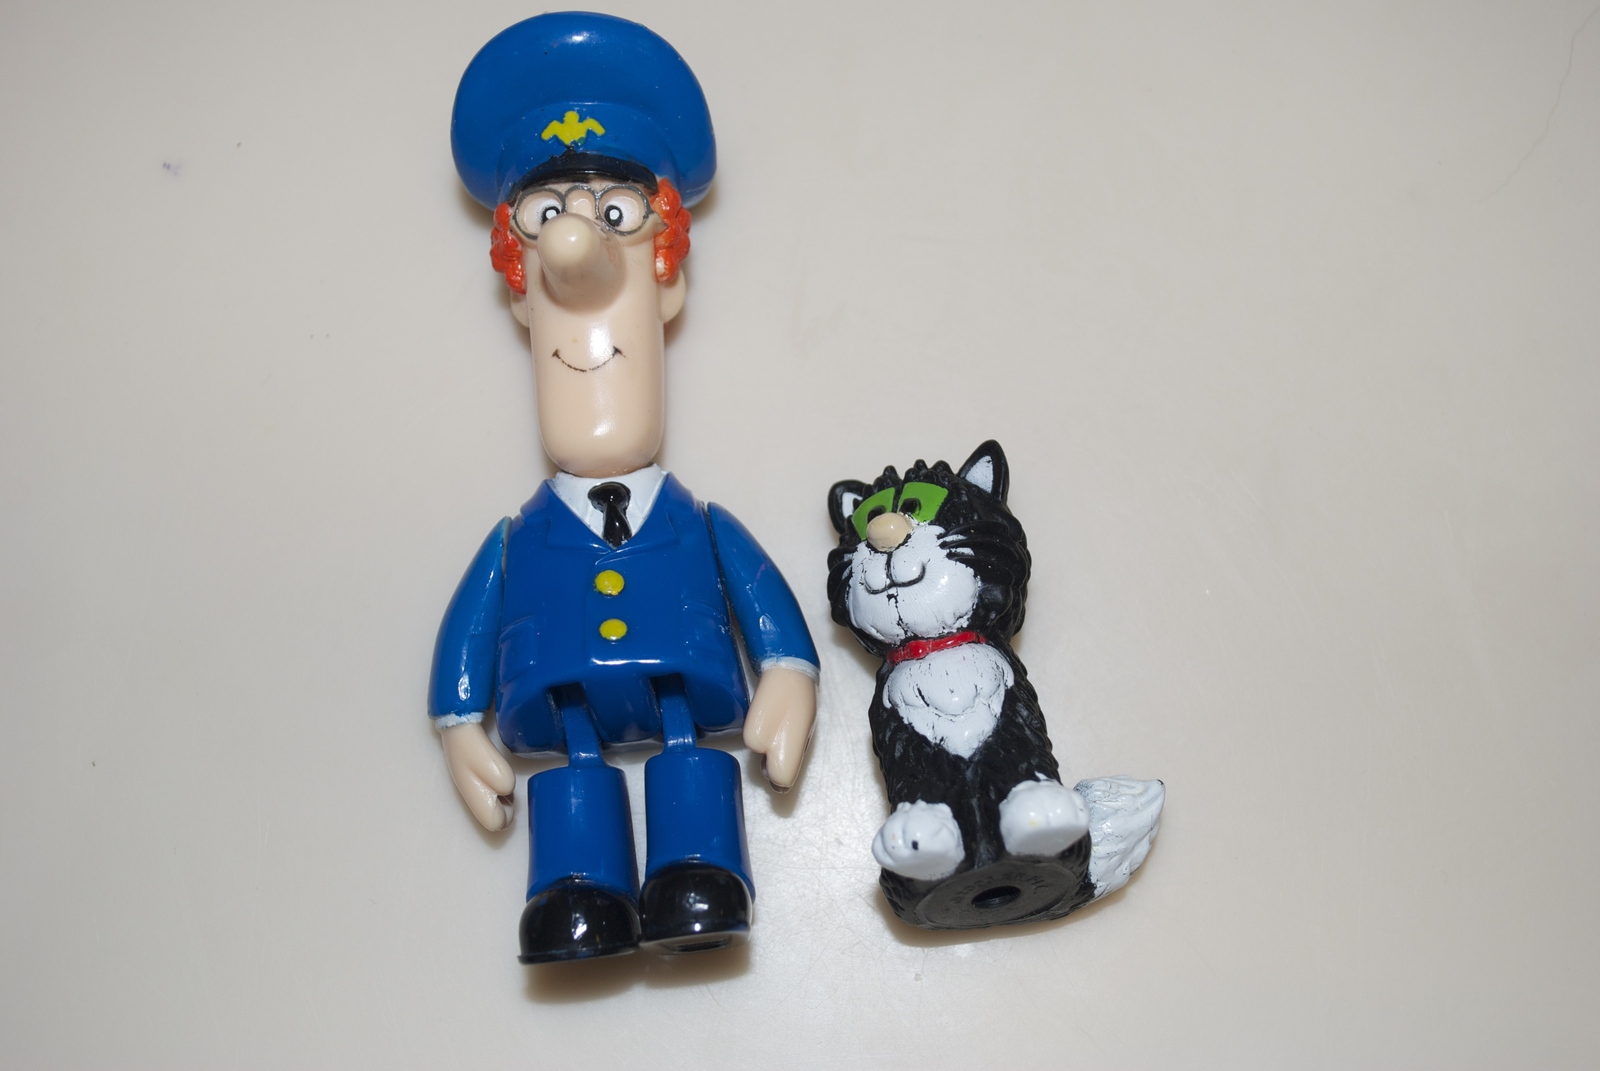 Postman Pat & Jess The Cat Figures